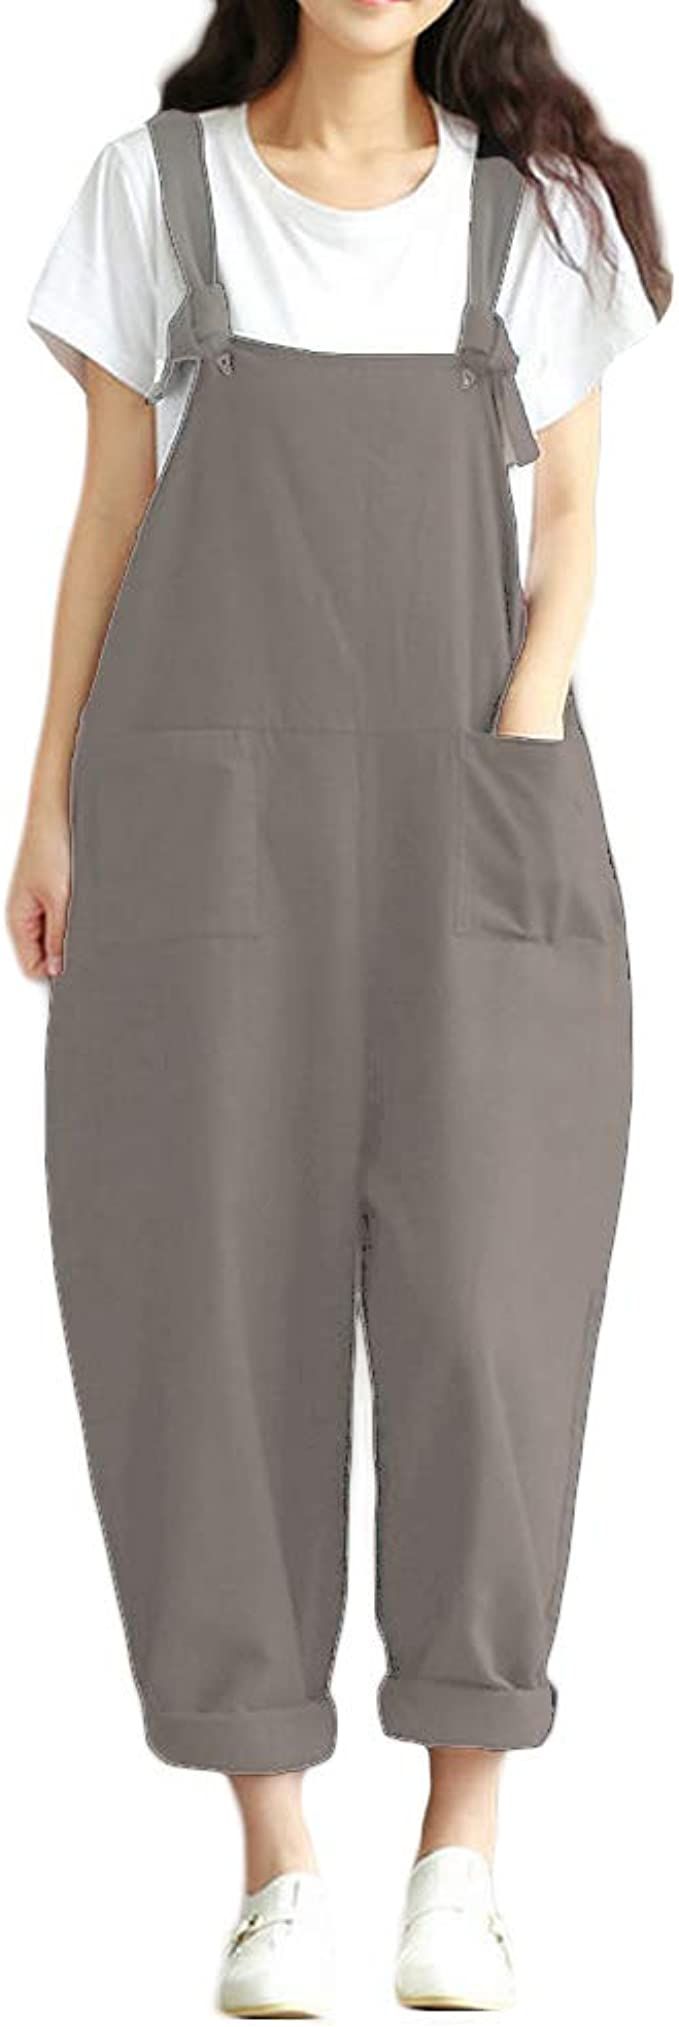 YESNO Women Casual Loose Long Bloomer Bib Pants Overalls Baggy Cotton Jumpsuits Rompers Elastic Cuff Pockets PV5CA